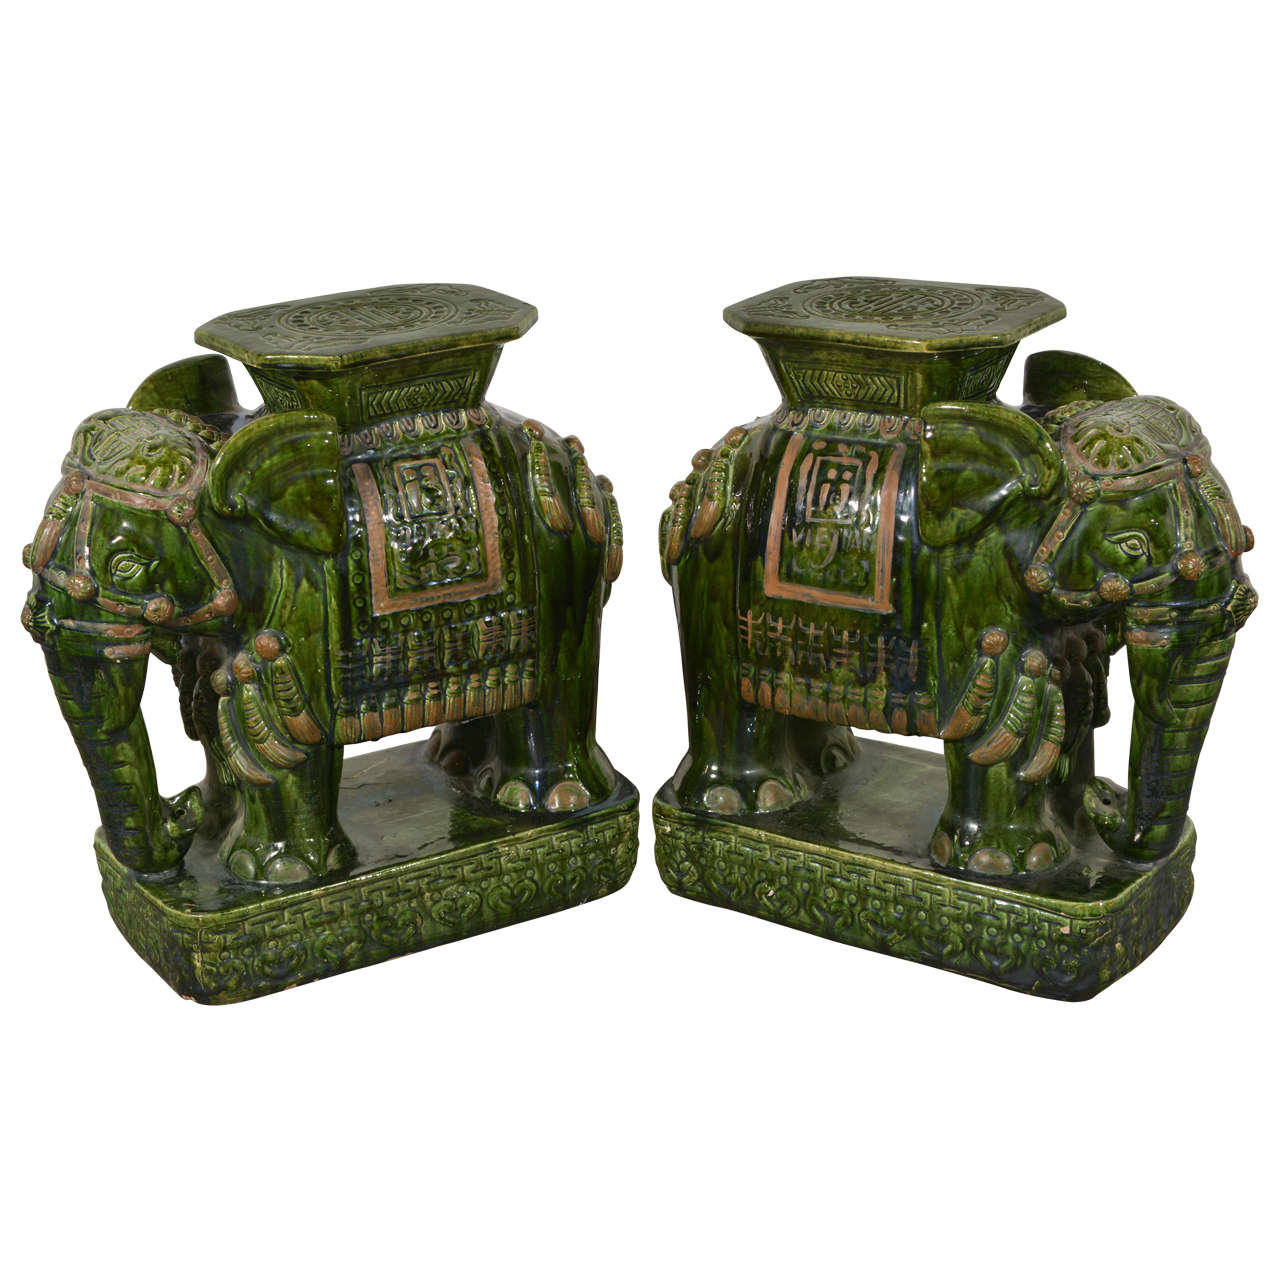 Pair Of Vintage Elephant Garden Stools At 1stdibs